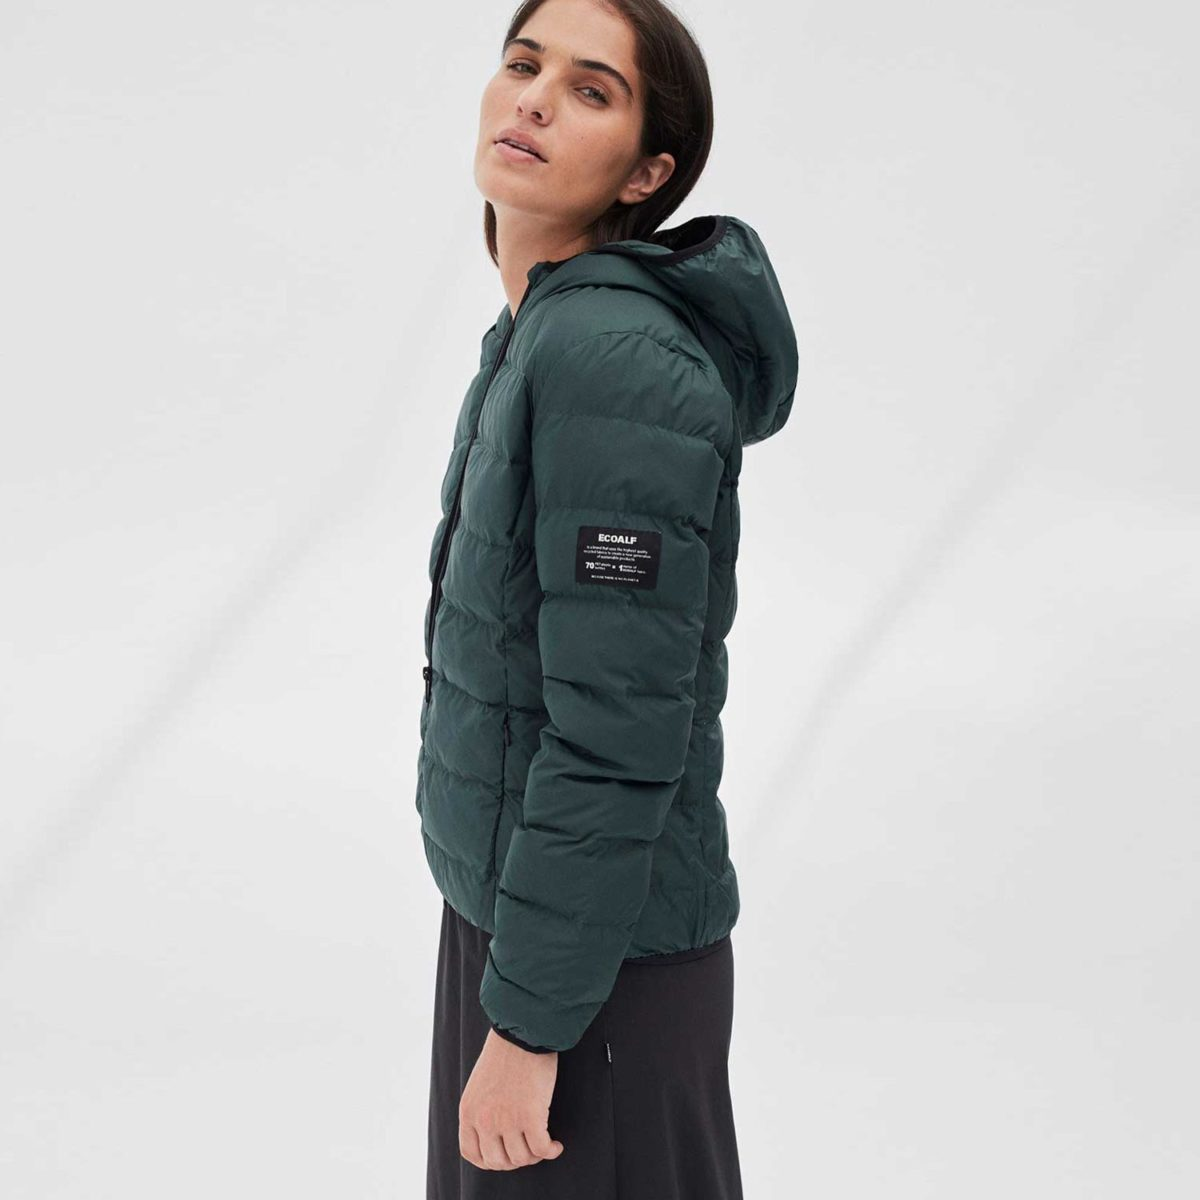 asp jacket ecoalf womens korean green